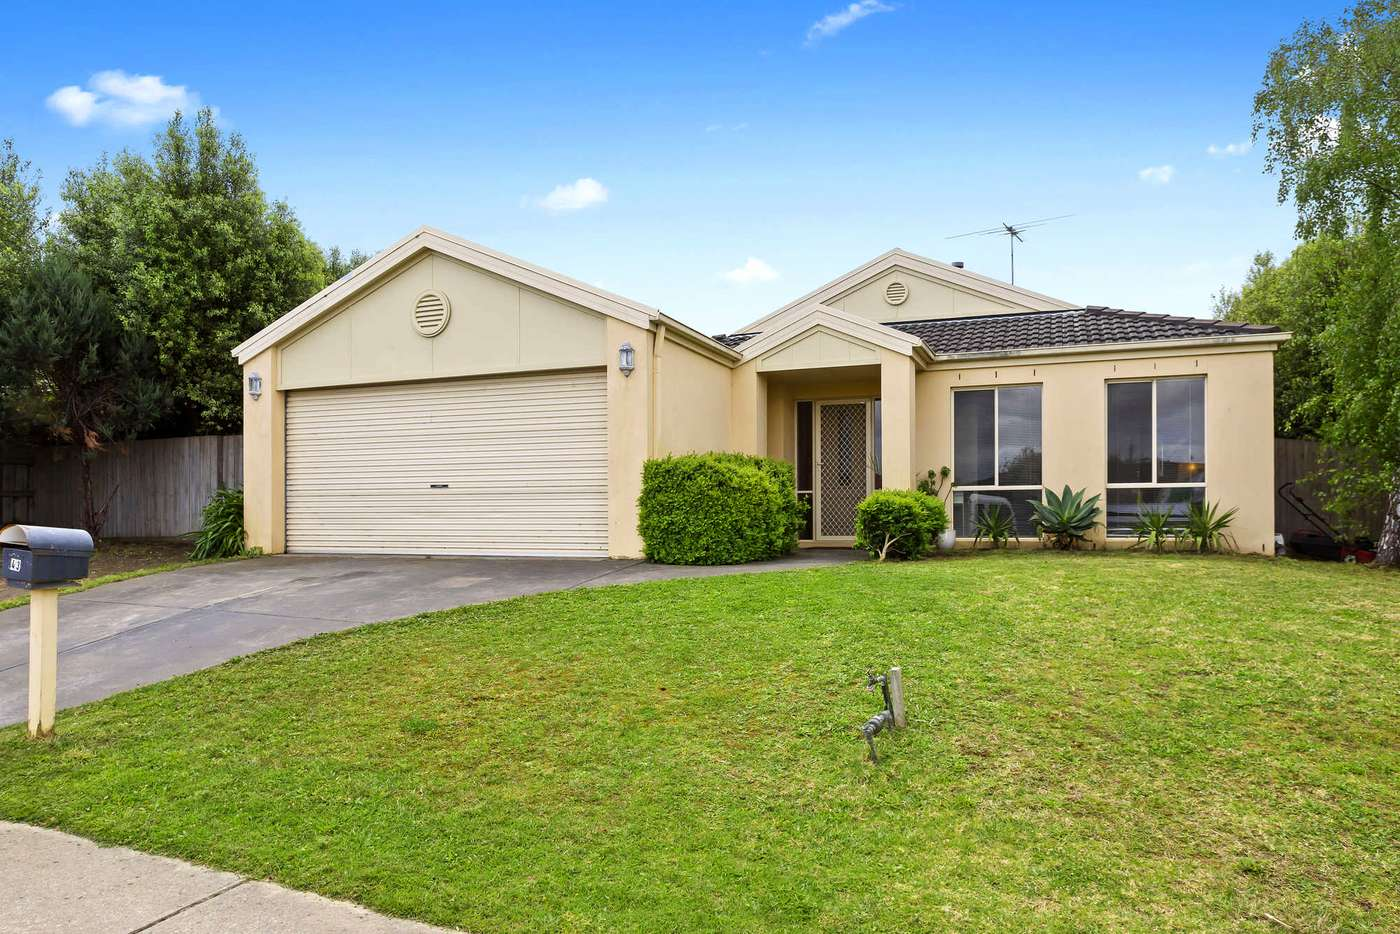 Main view of Homely house listing, 43 Tintagel Way, Mornington VIC 3931